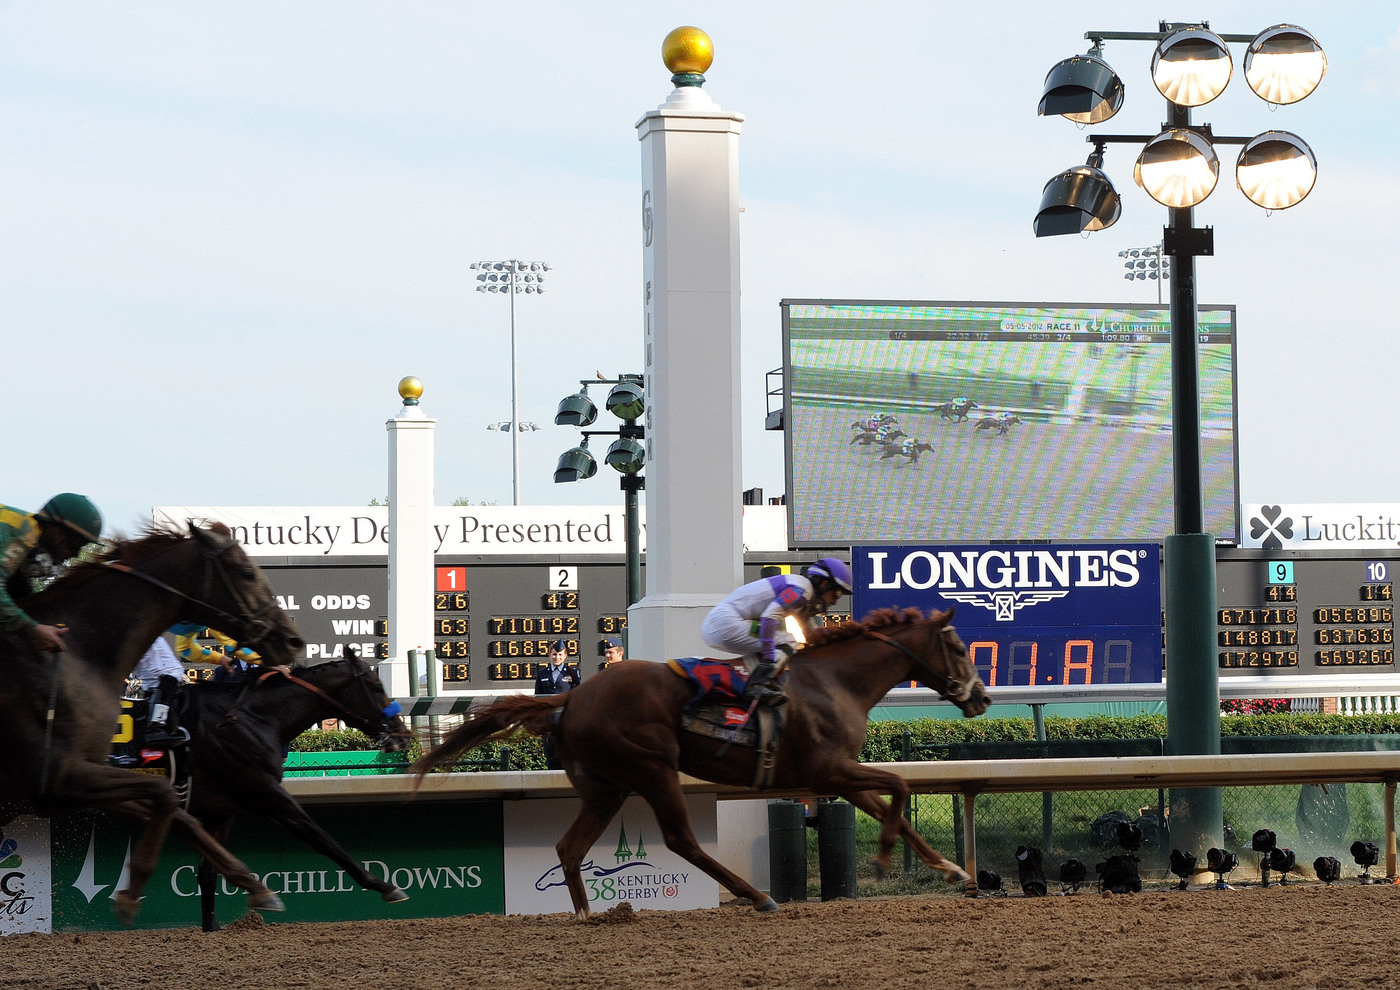 Longines Flat Racing Event: Churchill Downs announces Longines as Entitlement Partner of Longines Kentucky Oaks 139 2